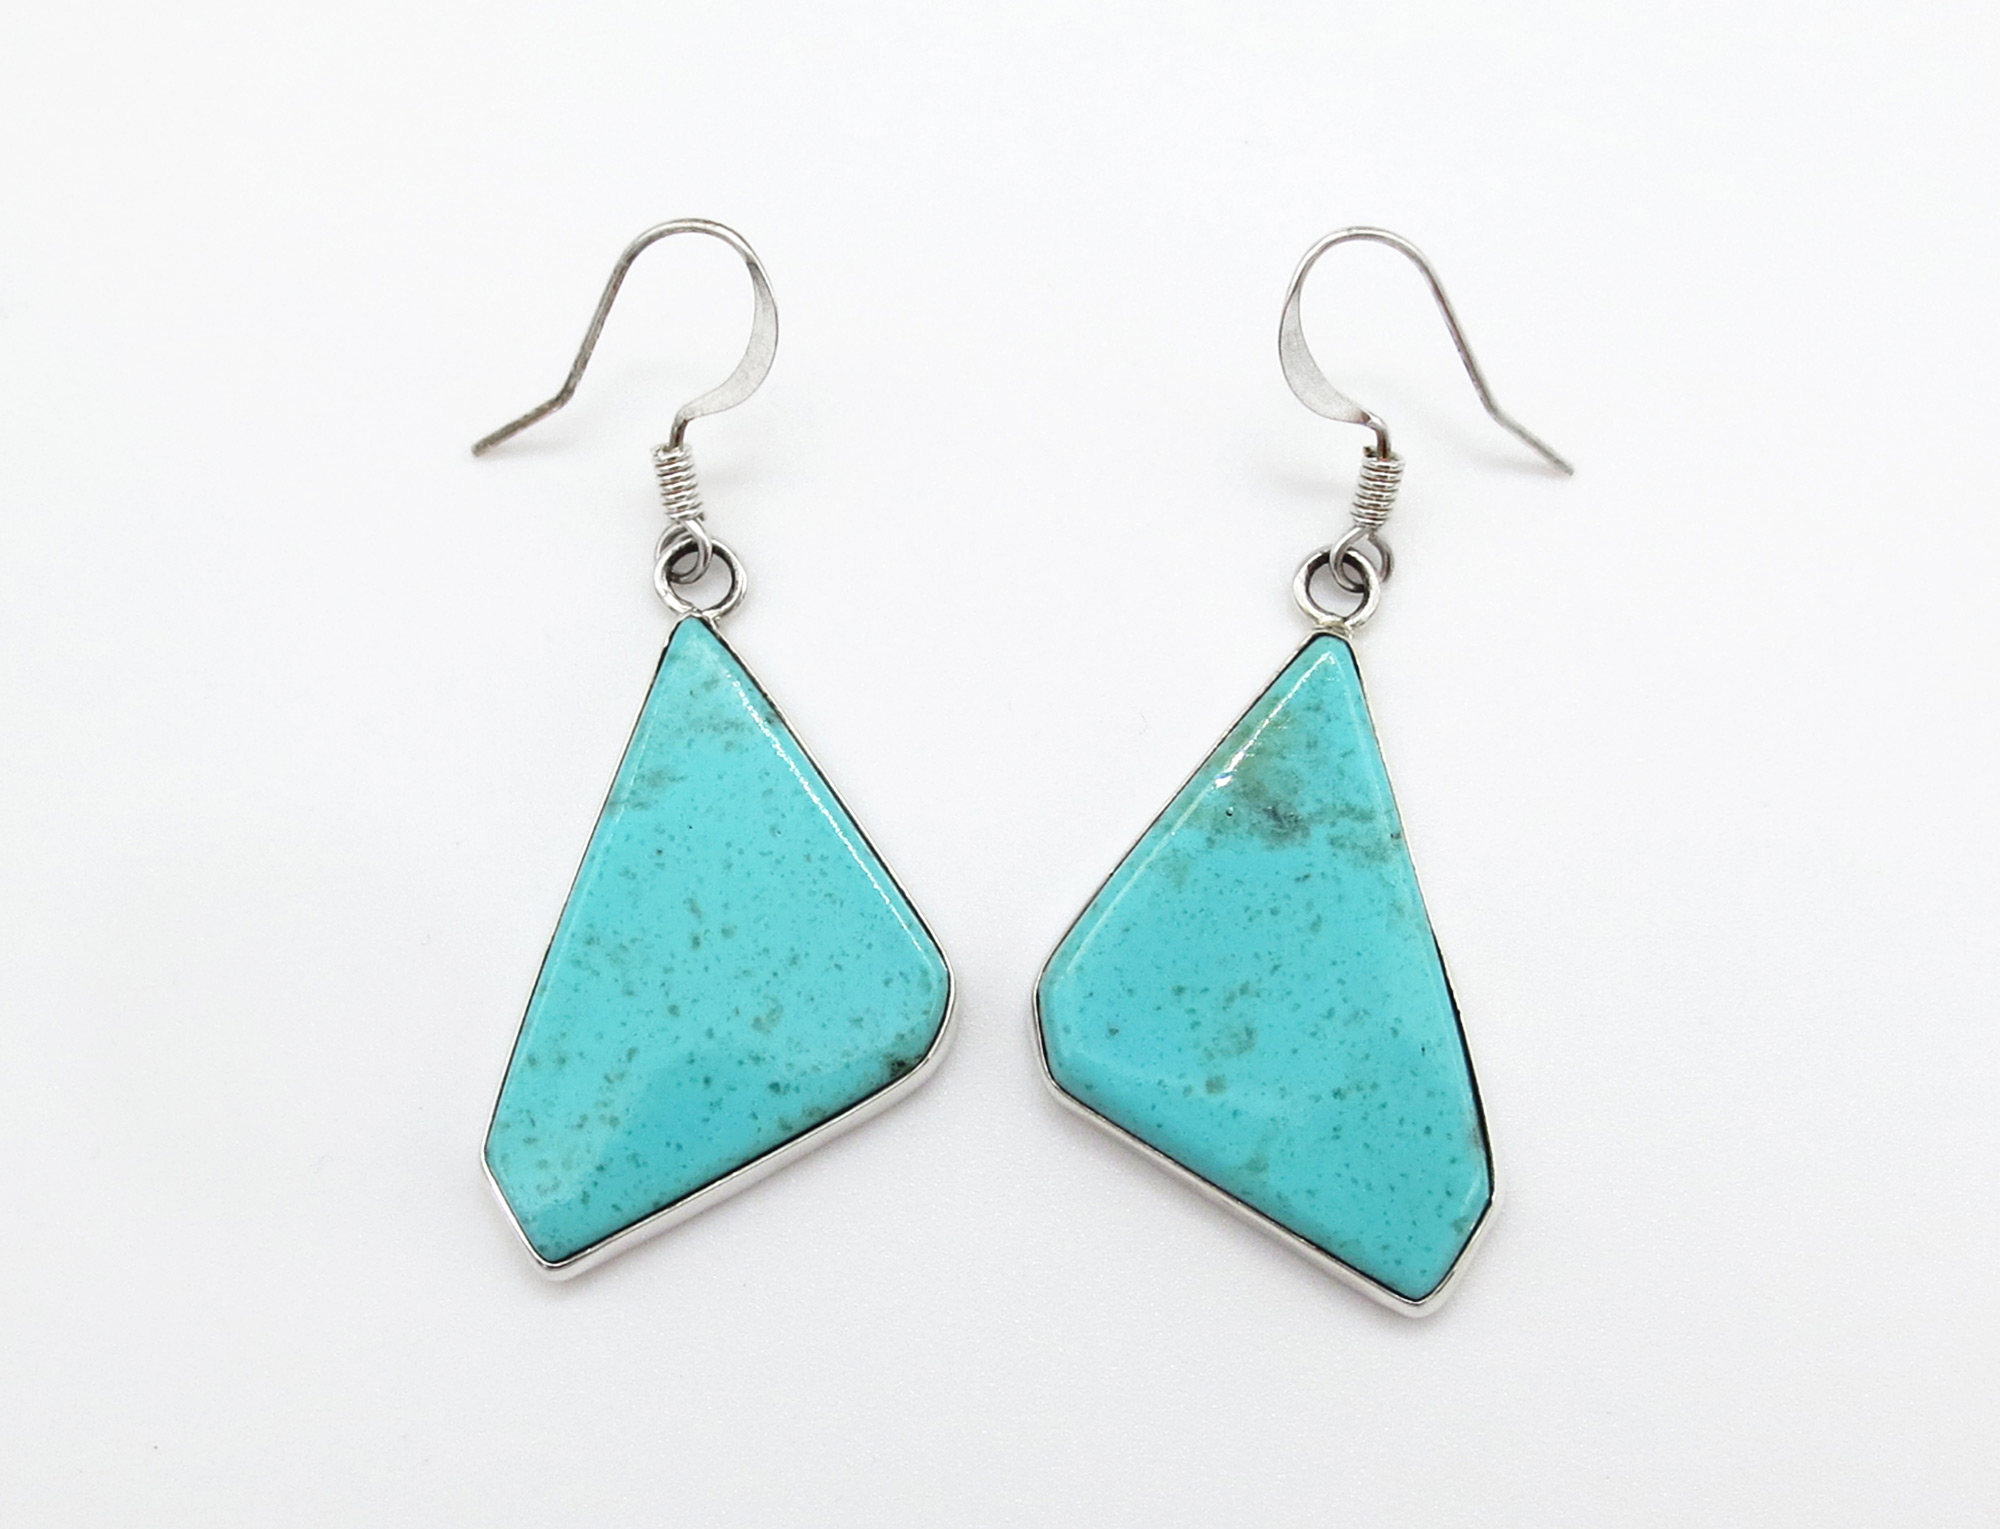 Turquoise & Sterling Silver Earrings Native American Jewelry - 3924rio